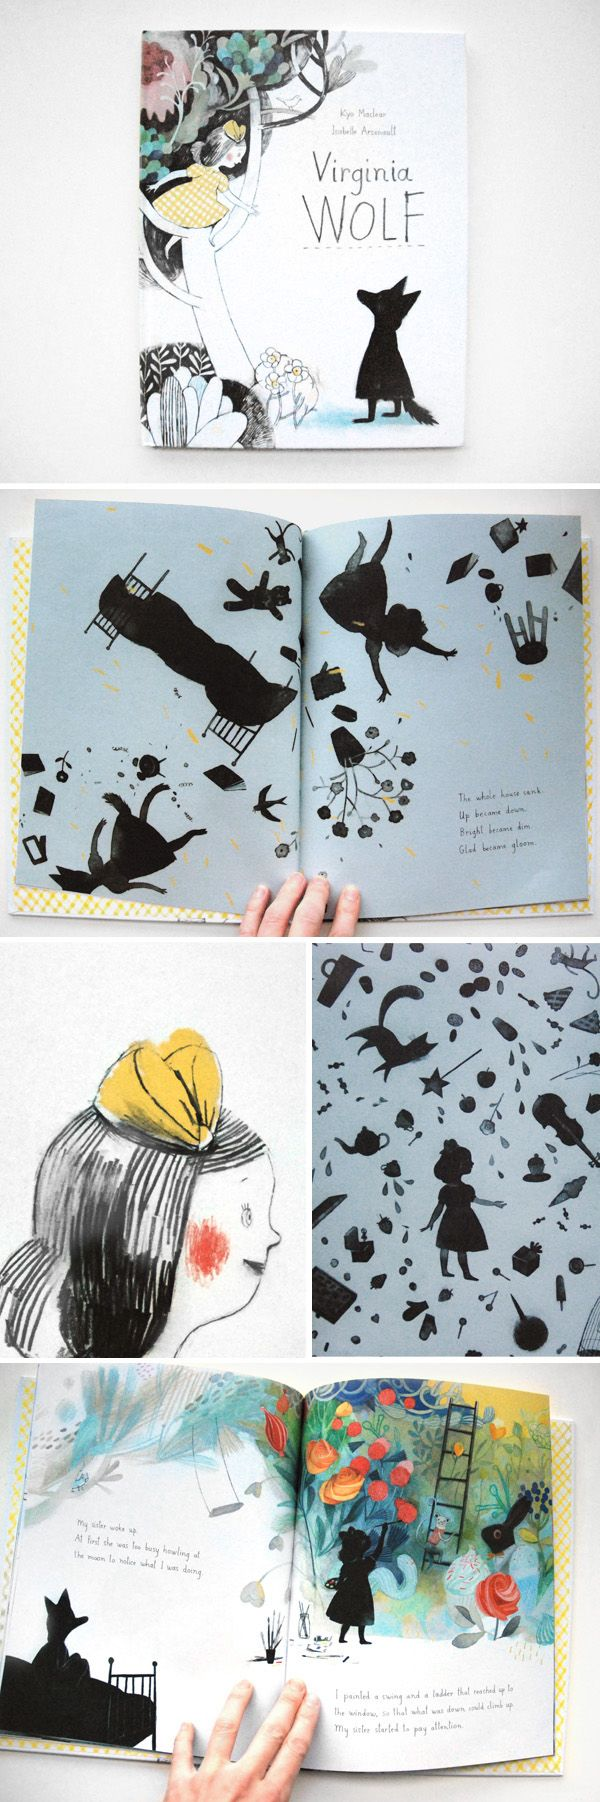 """""""Virginia Wolf"""", written by Kyo Maclear, illustrated by Isabelle Arsenault"""